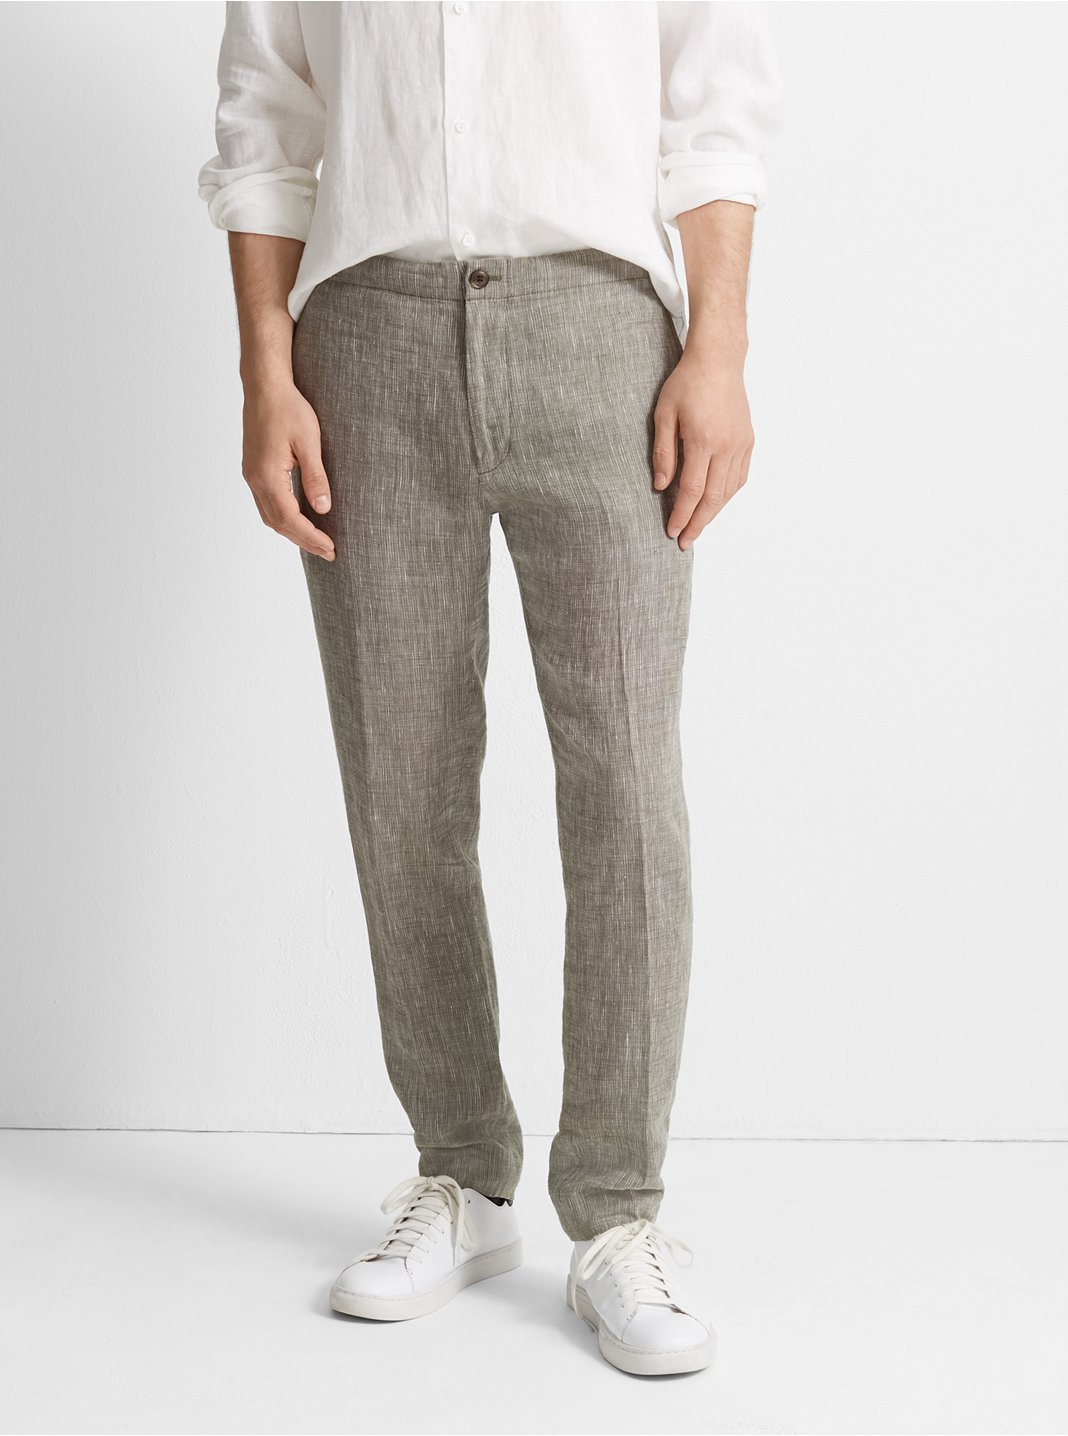 540e08dd8e2890 Suffolk End-On-End Linen Pant